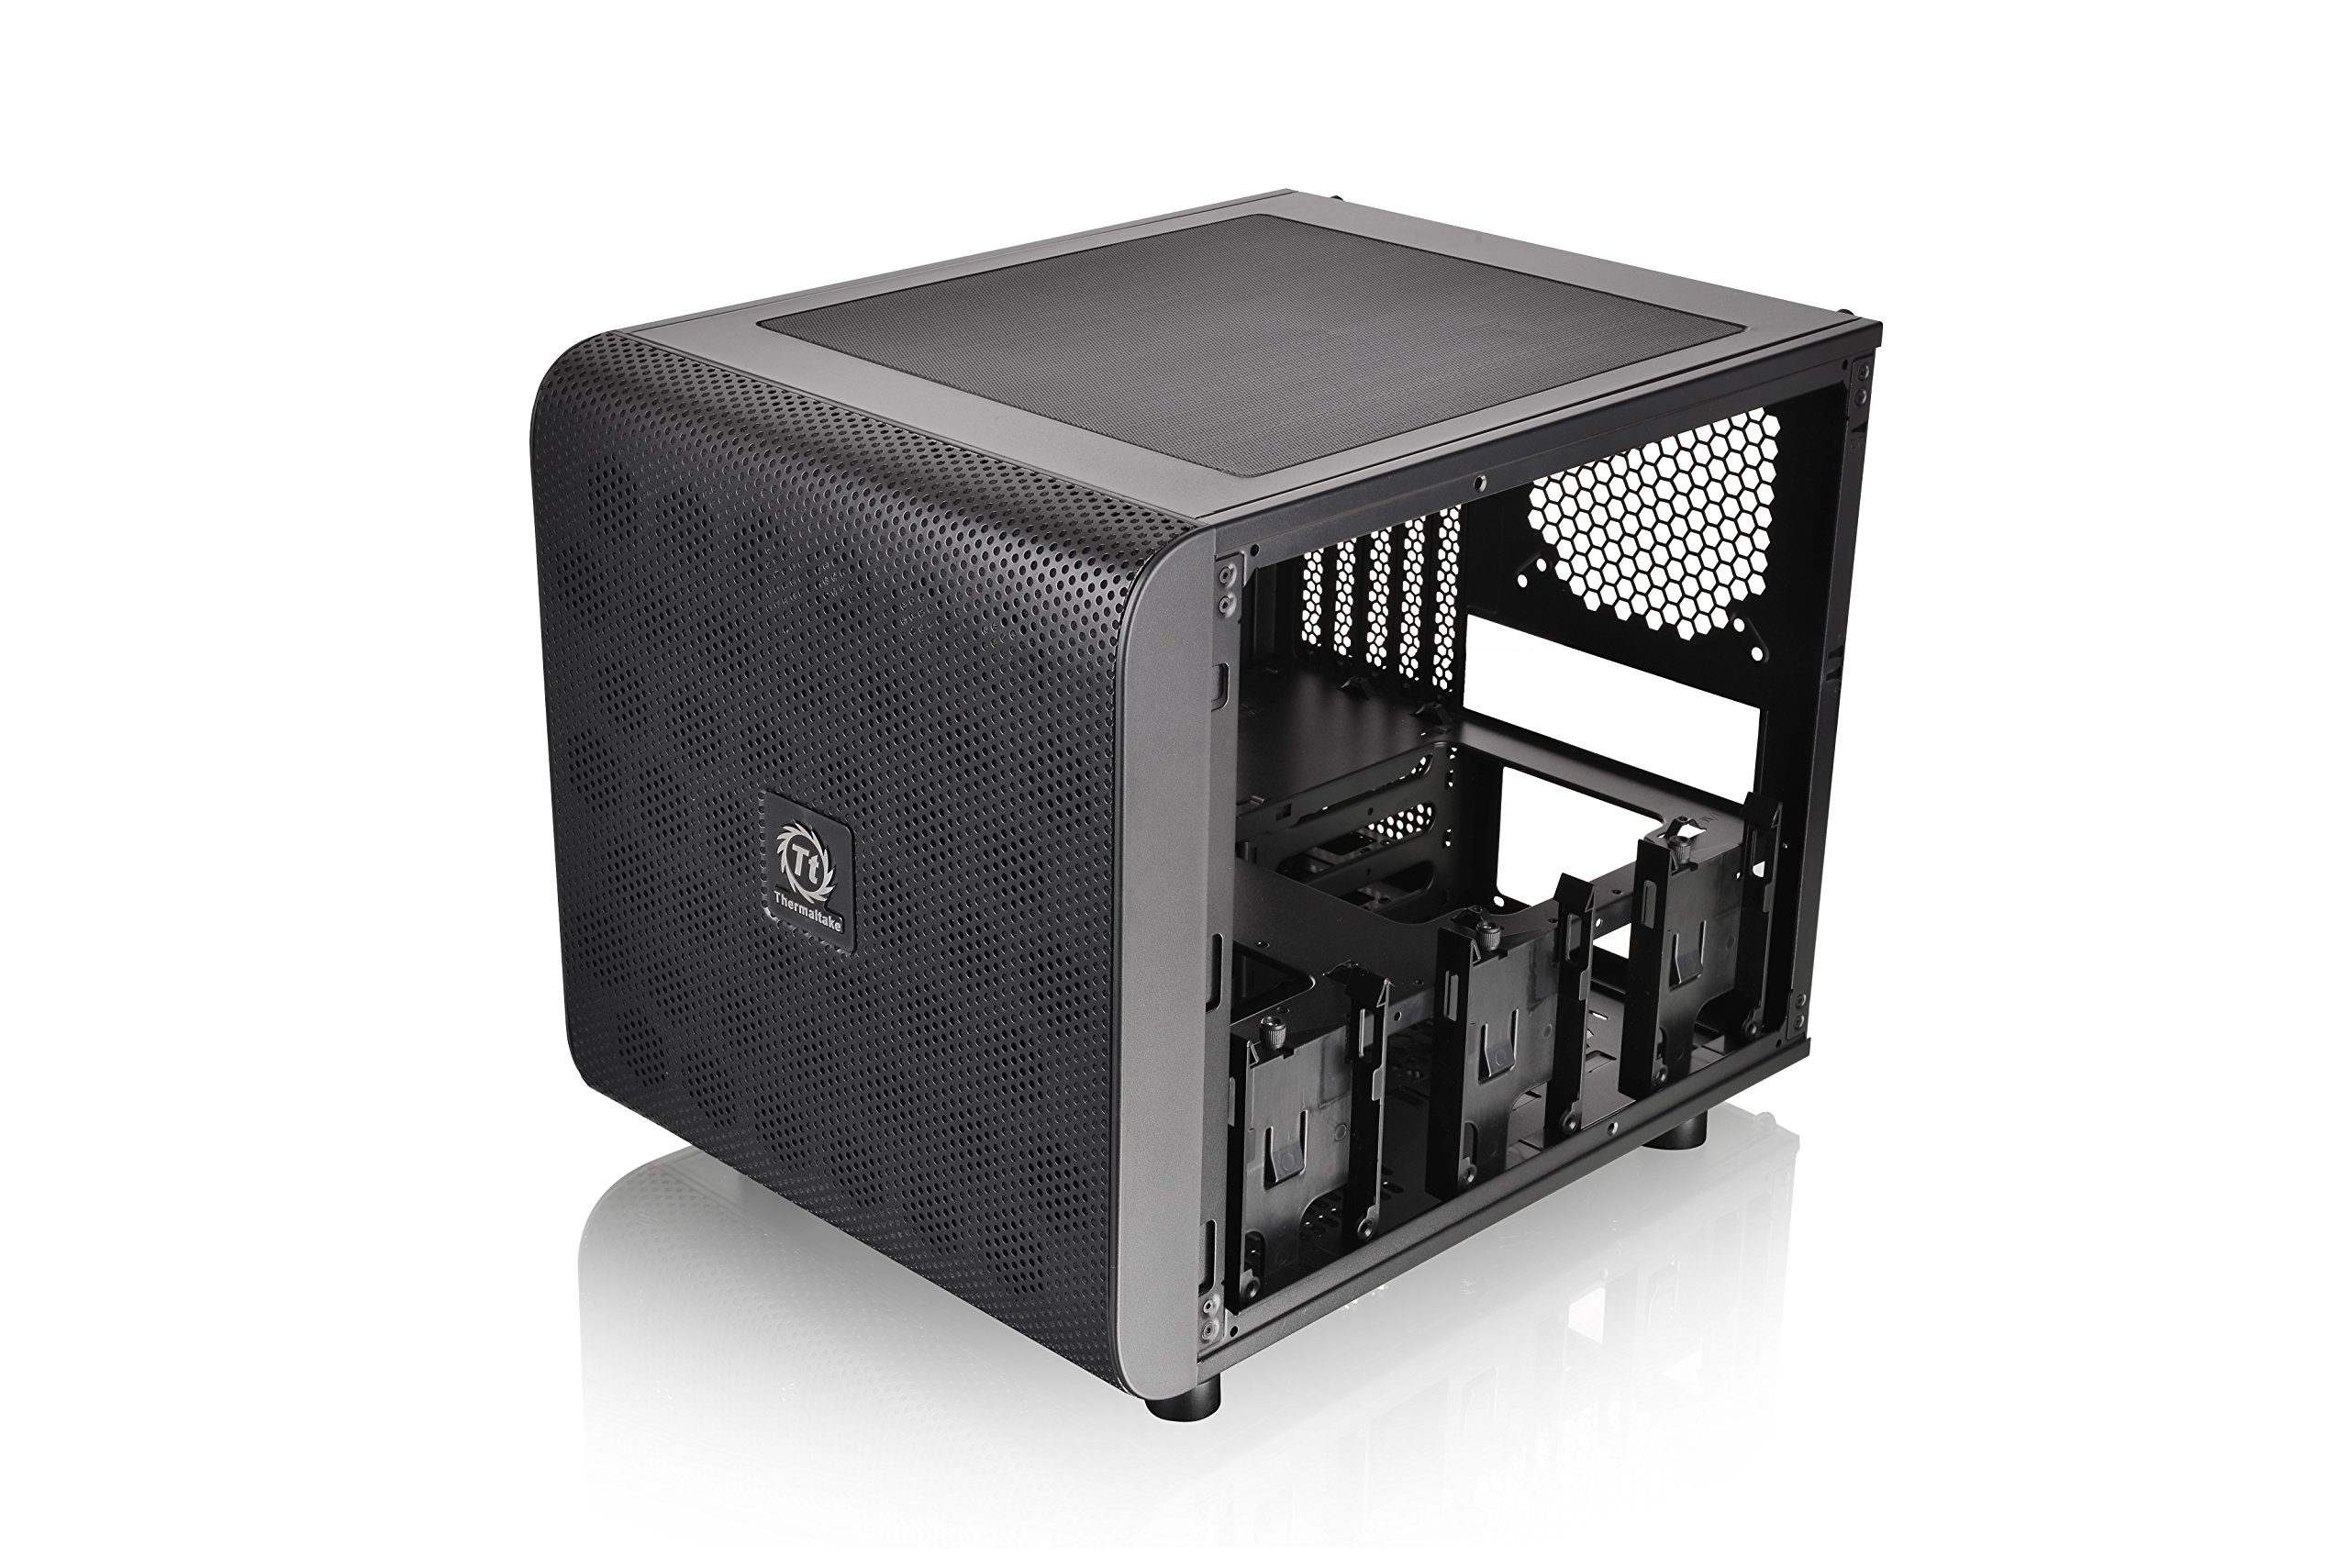 Thermaltake Core V21 SPCC Micro ATX Mini ITX Cube Gaming puter Case Chassis Small Form Factor Builds 200mm Front Fan Pre installed CA 1D5 00S1WN 00